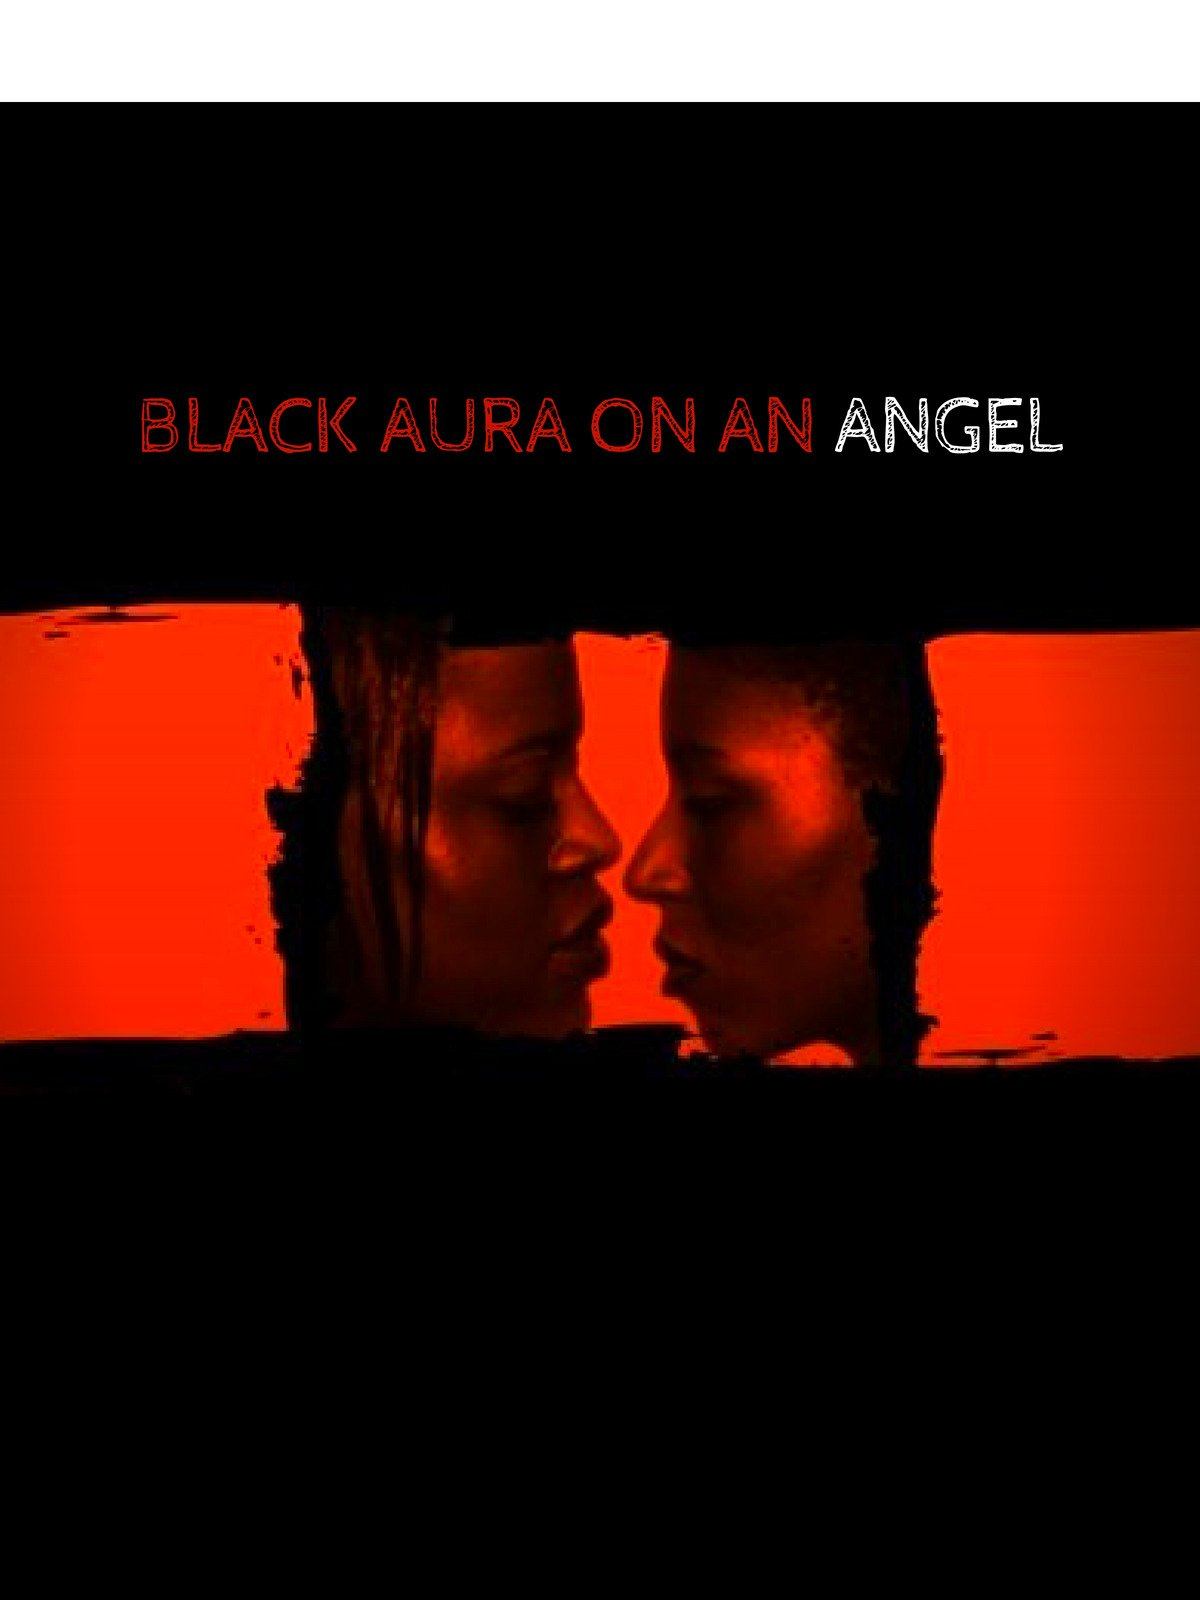 Black Aura on an Angel